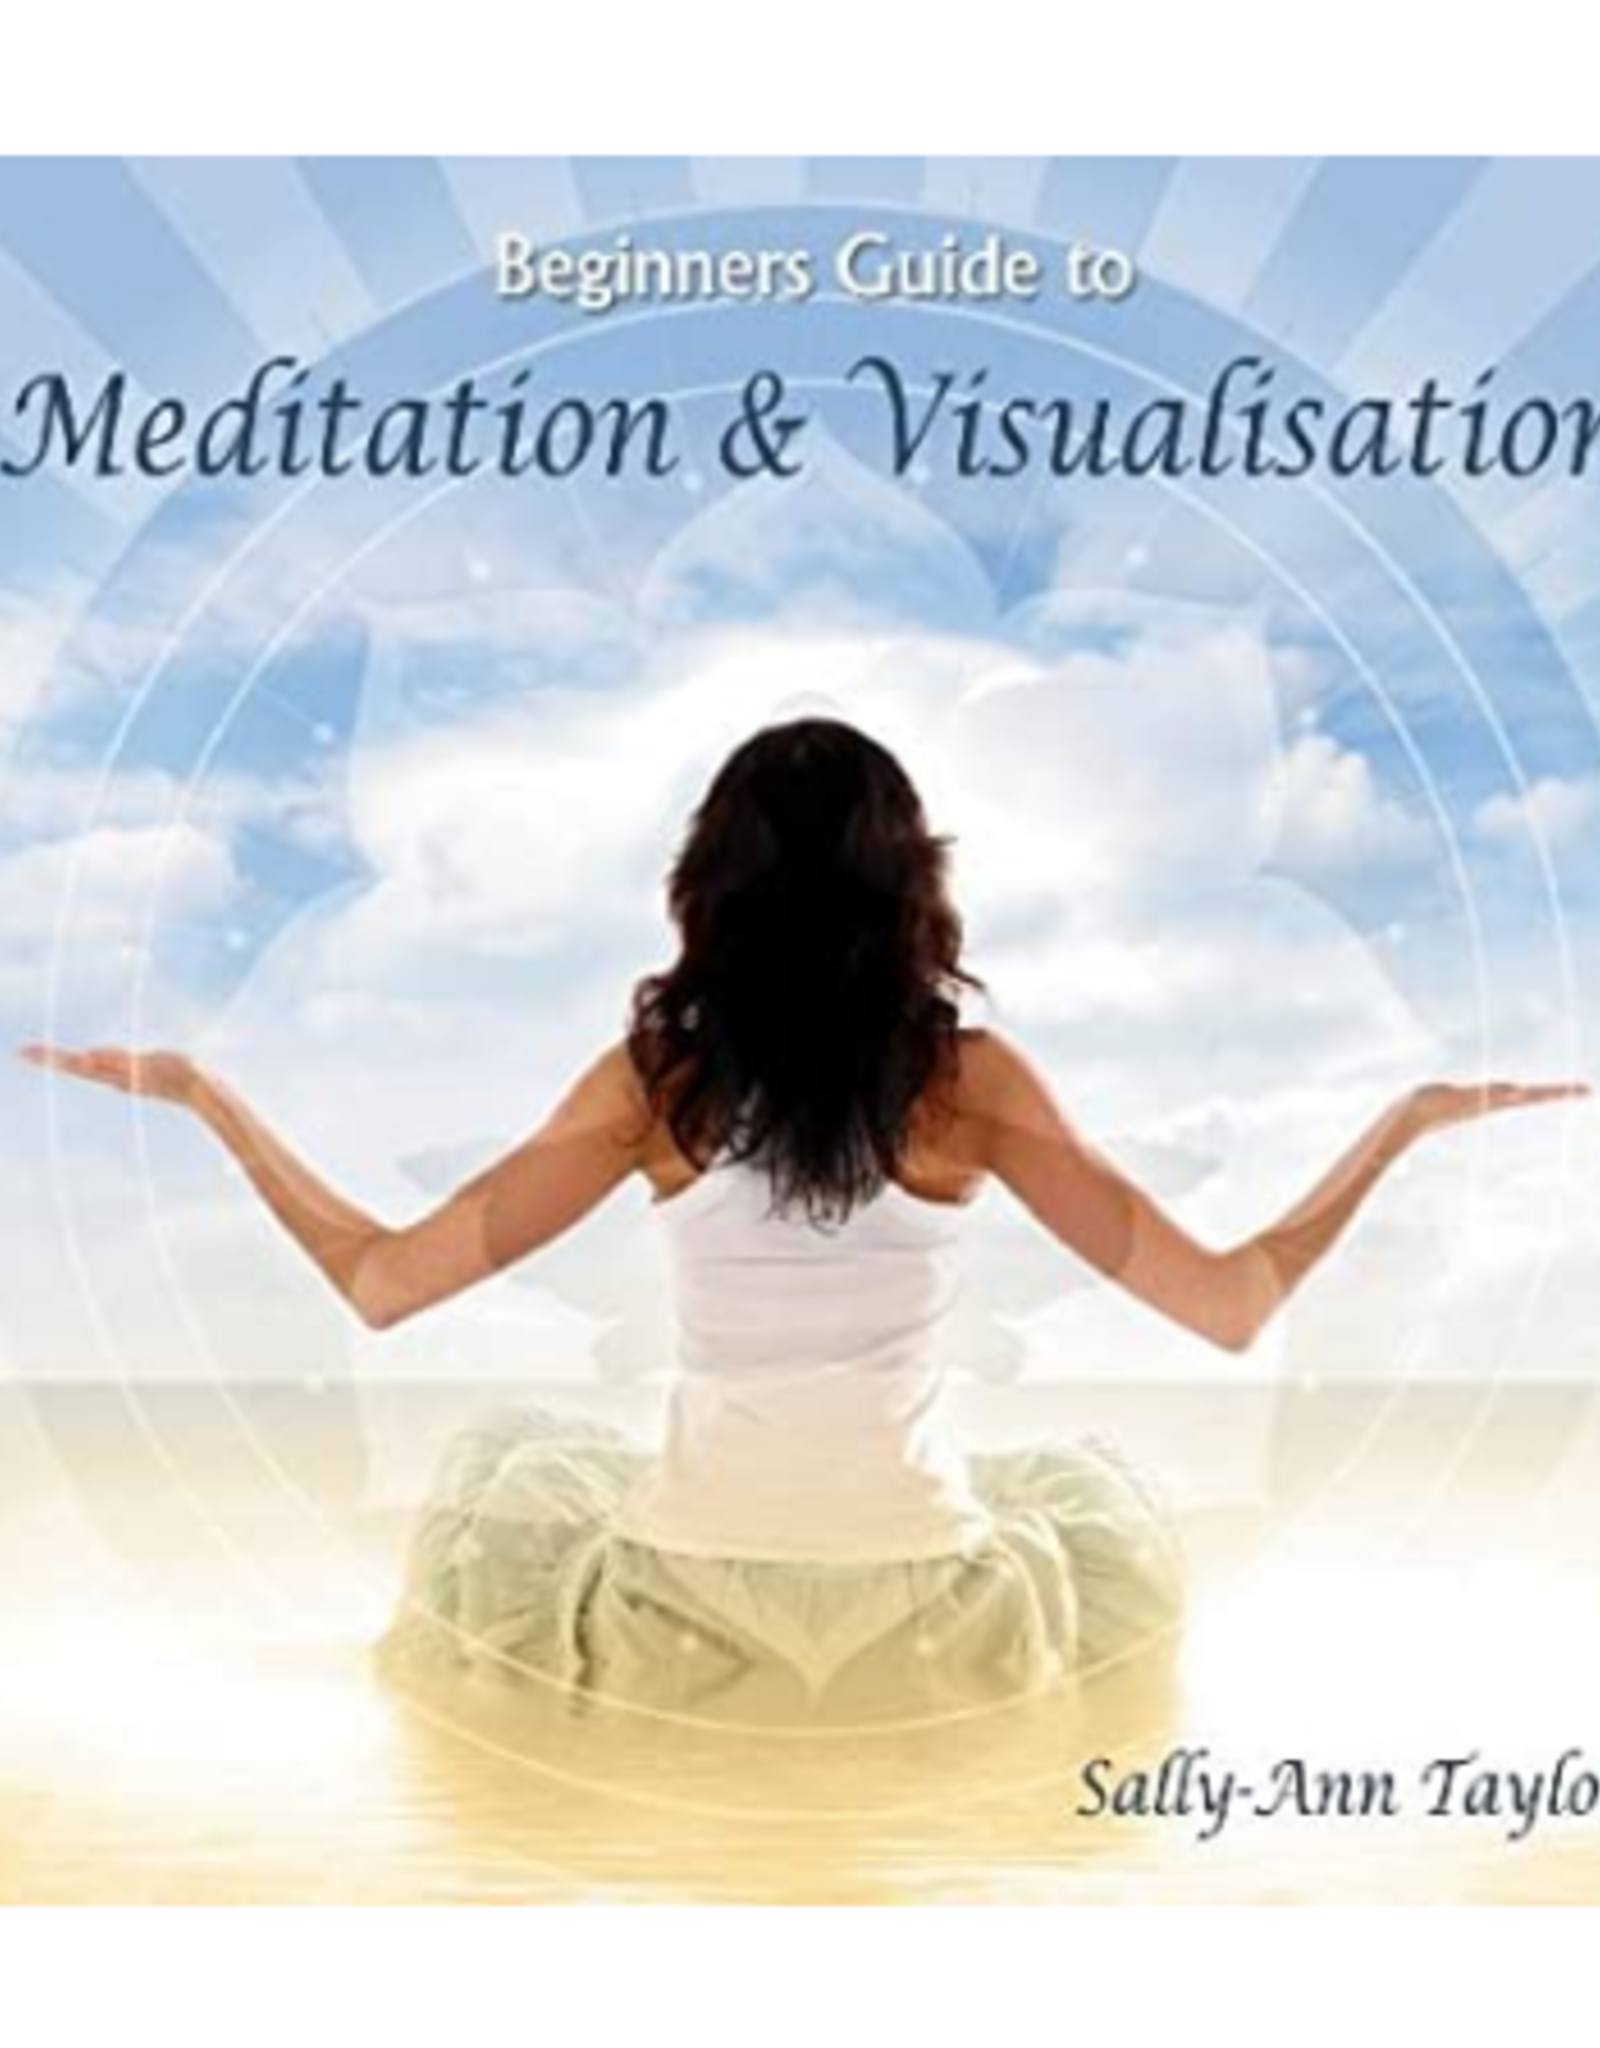 Sally-Ann Taylor Beginners Guide to Meditation & Visualization CD by Sally-Ann Taylor